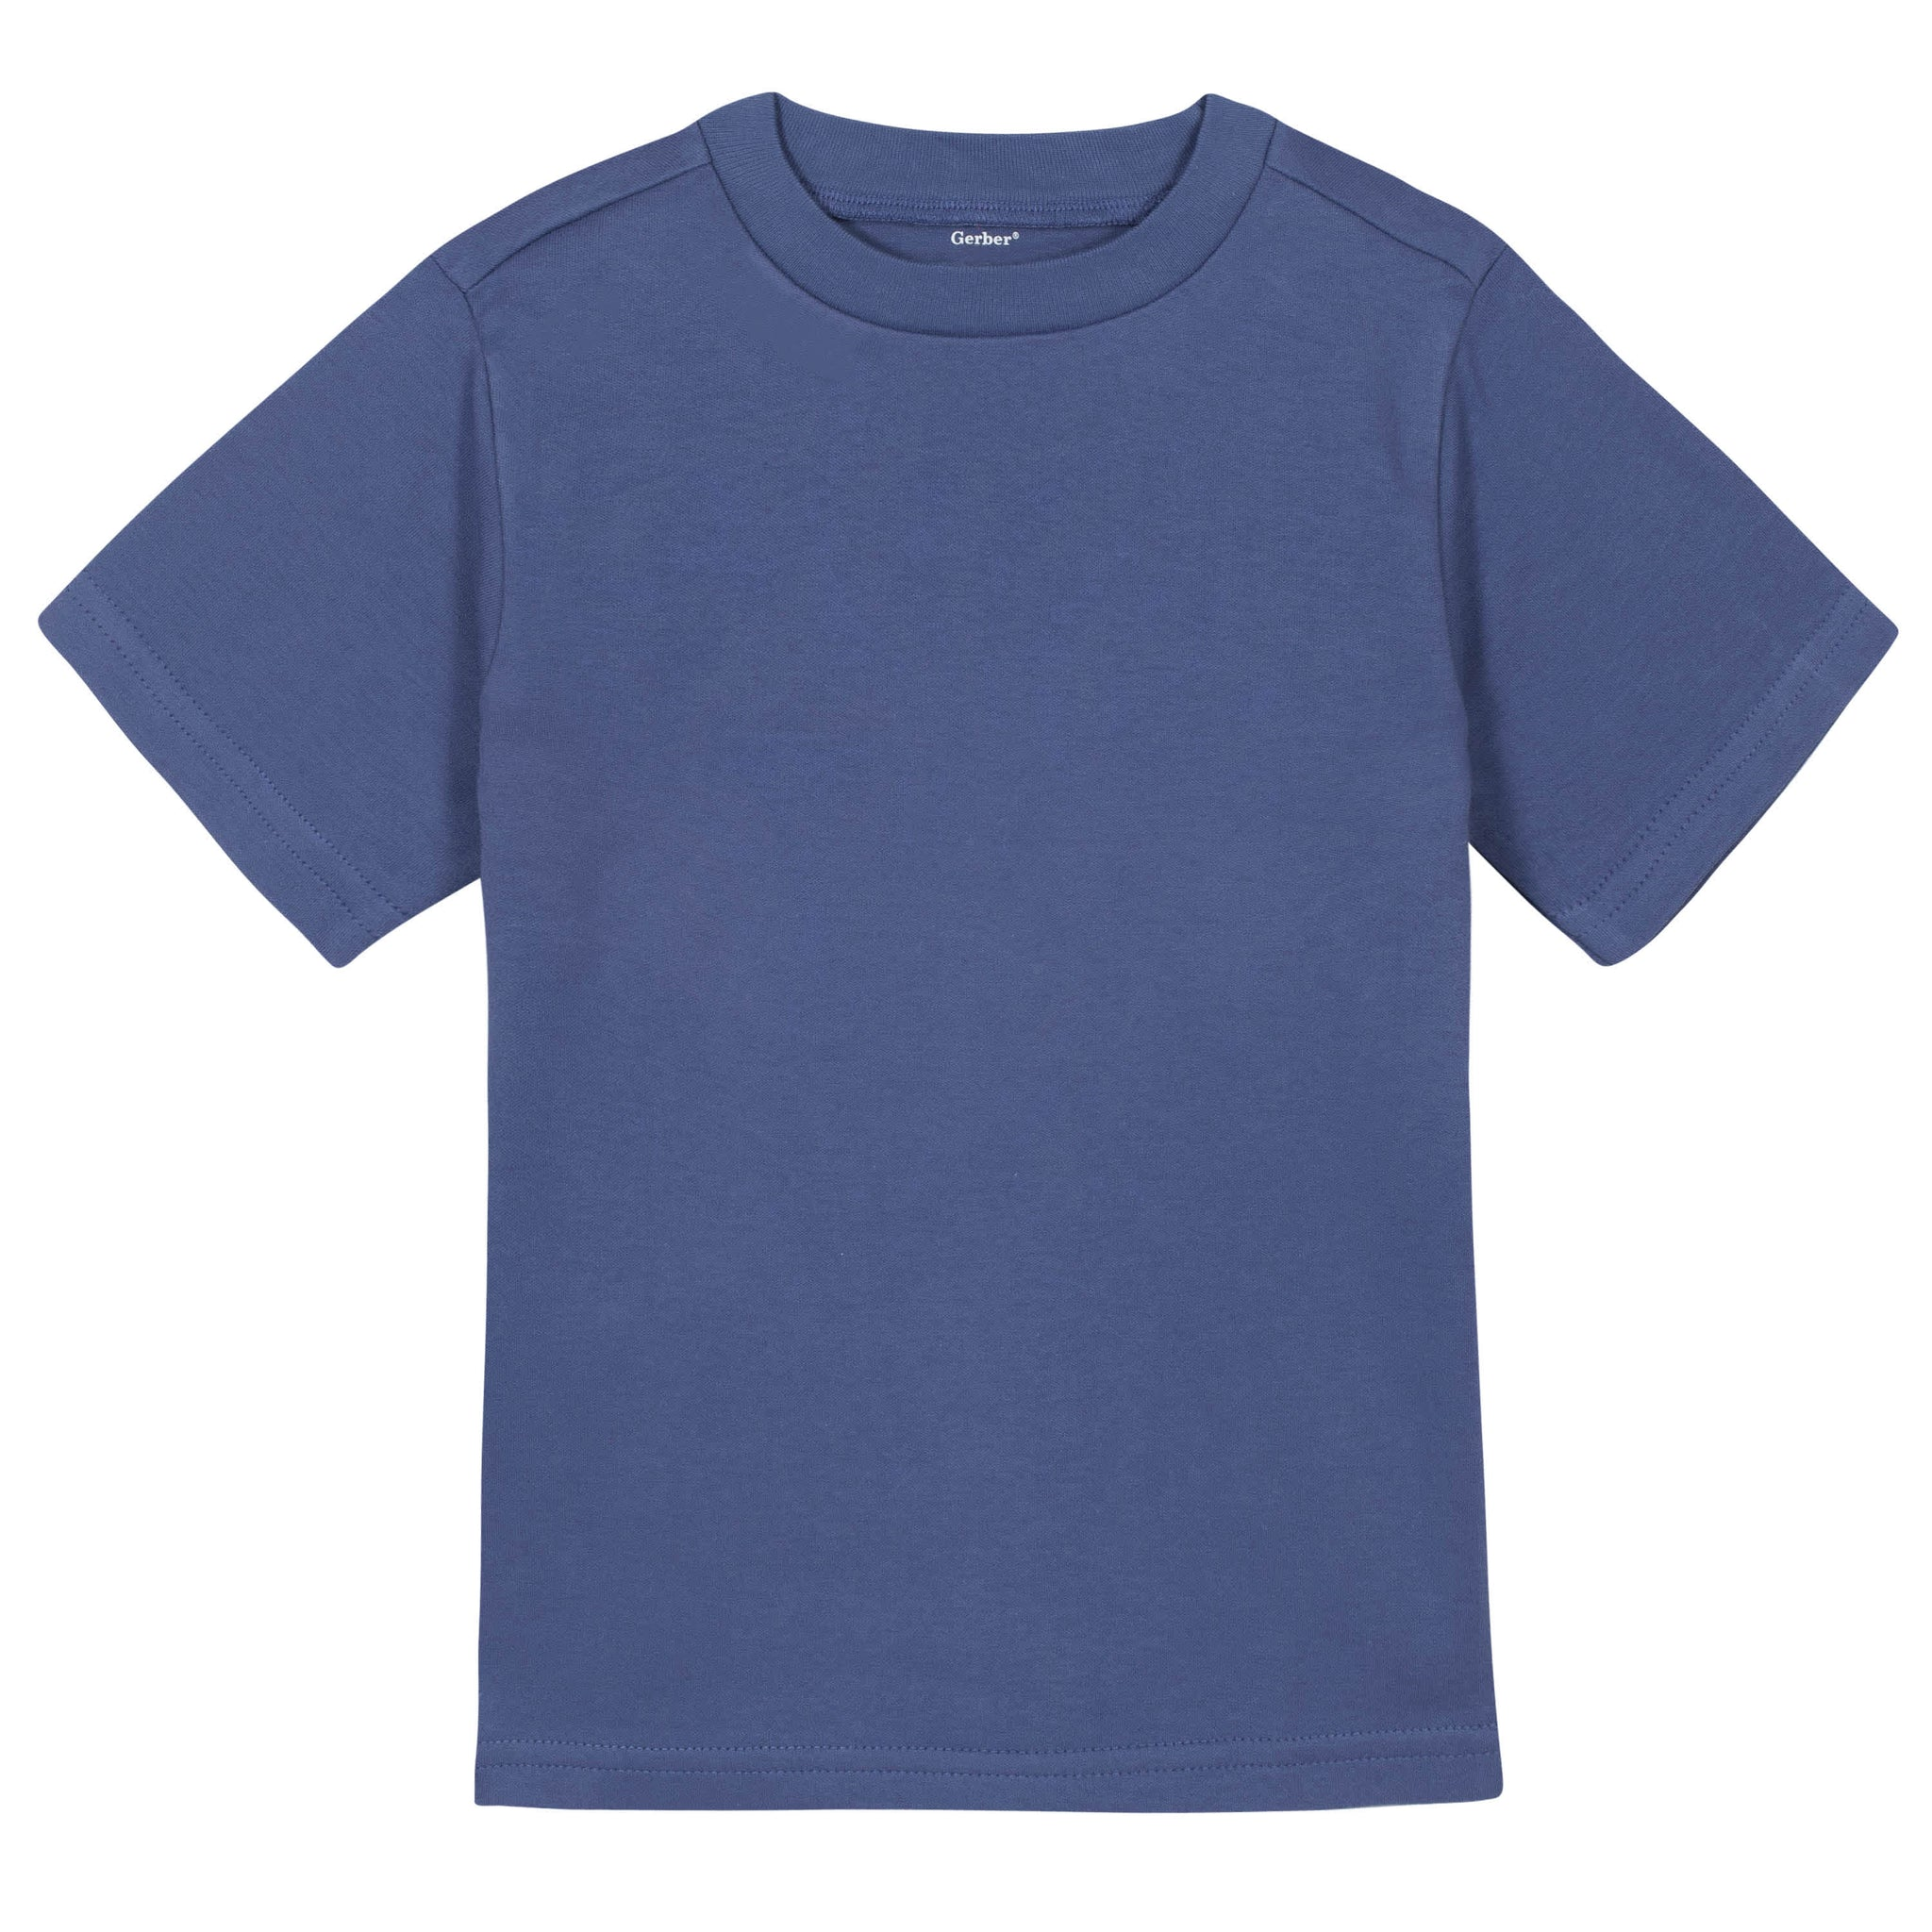 Gerber® Premium Blue Short Sleeve Tee Shirt - 10 Colors Available